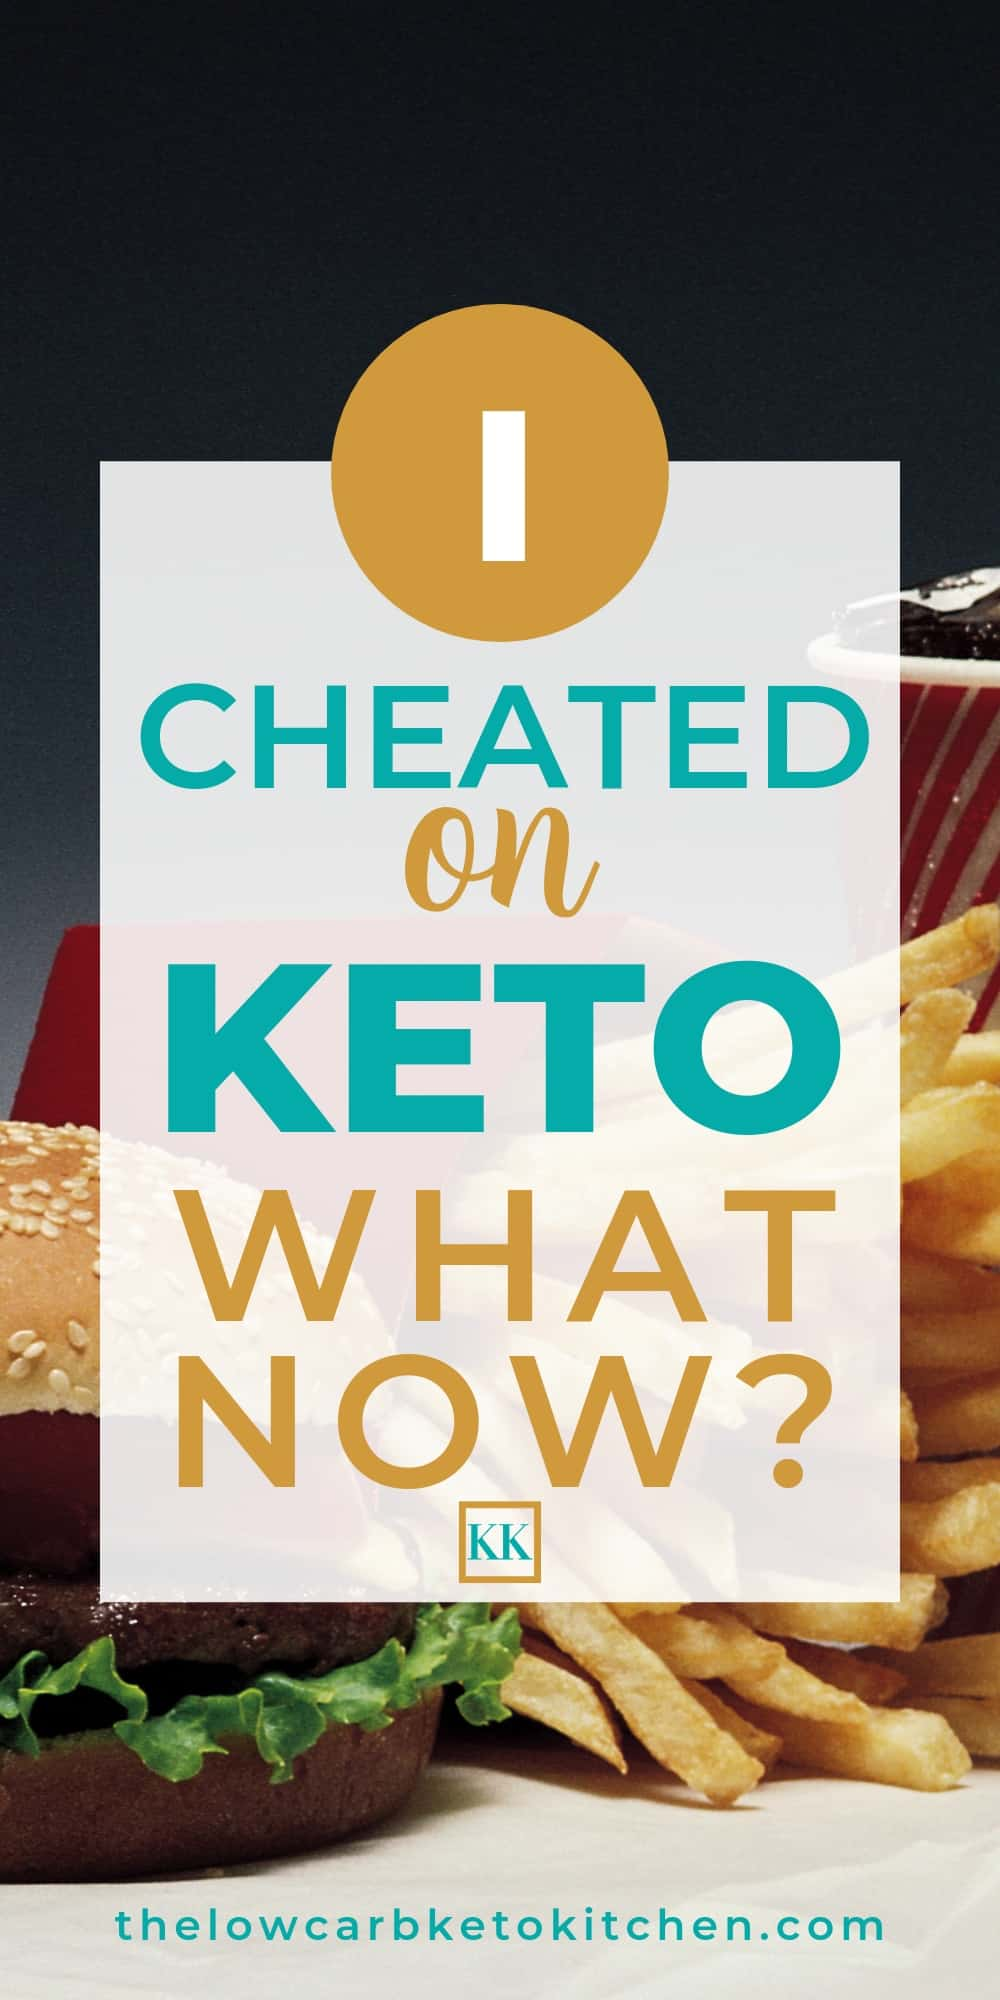 What Happens When You Cheat on Keto?